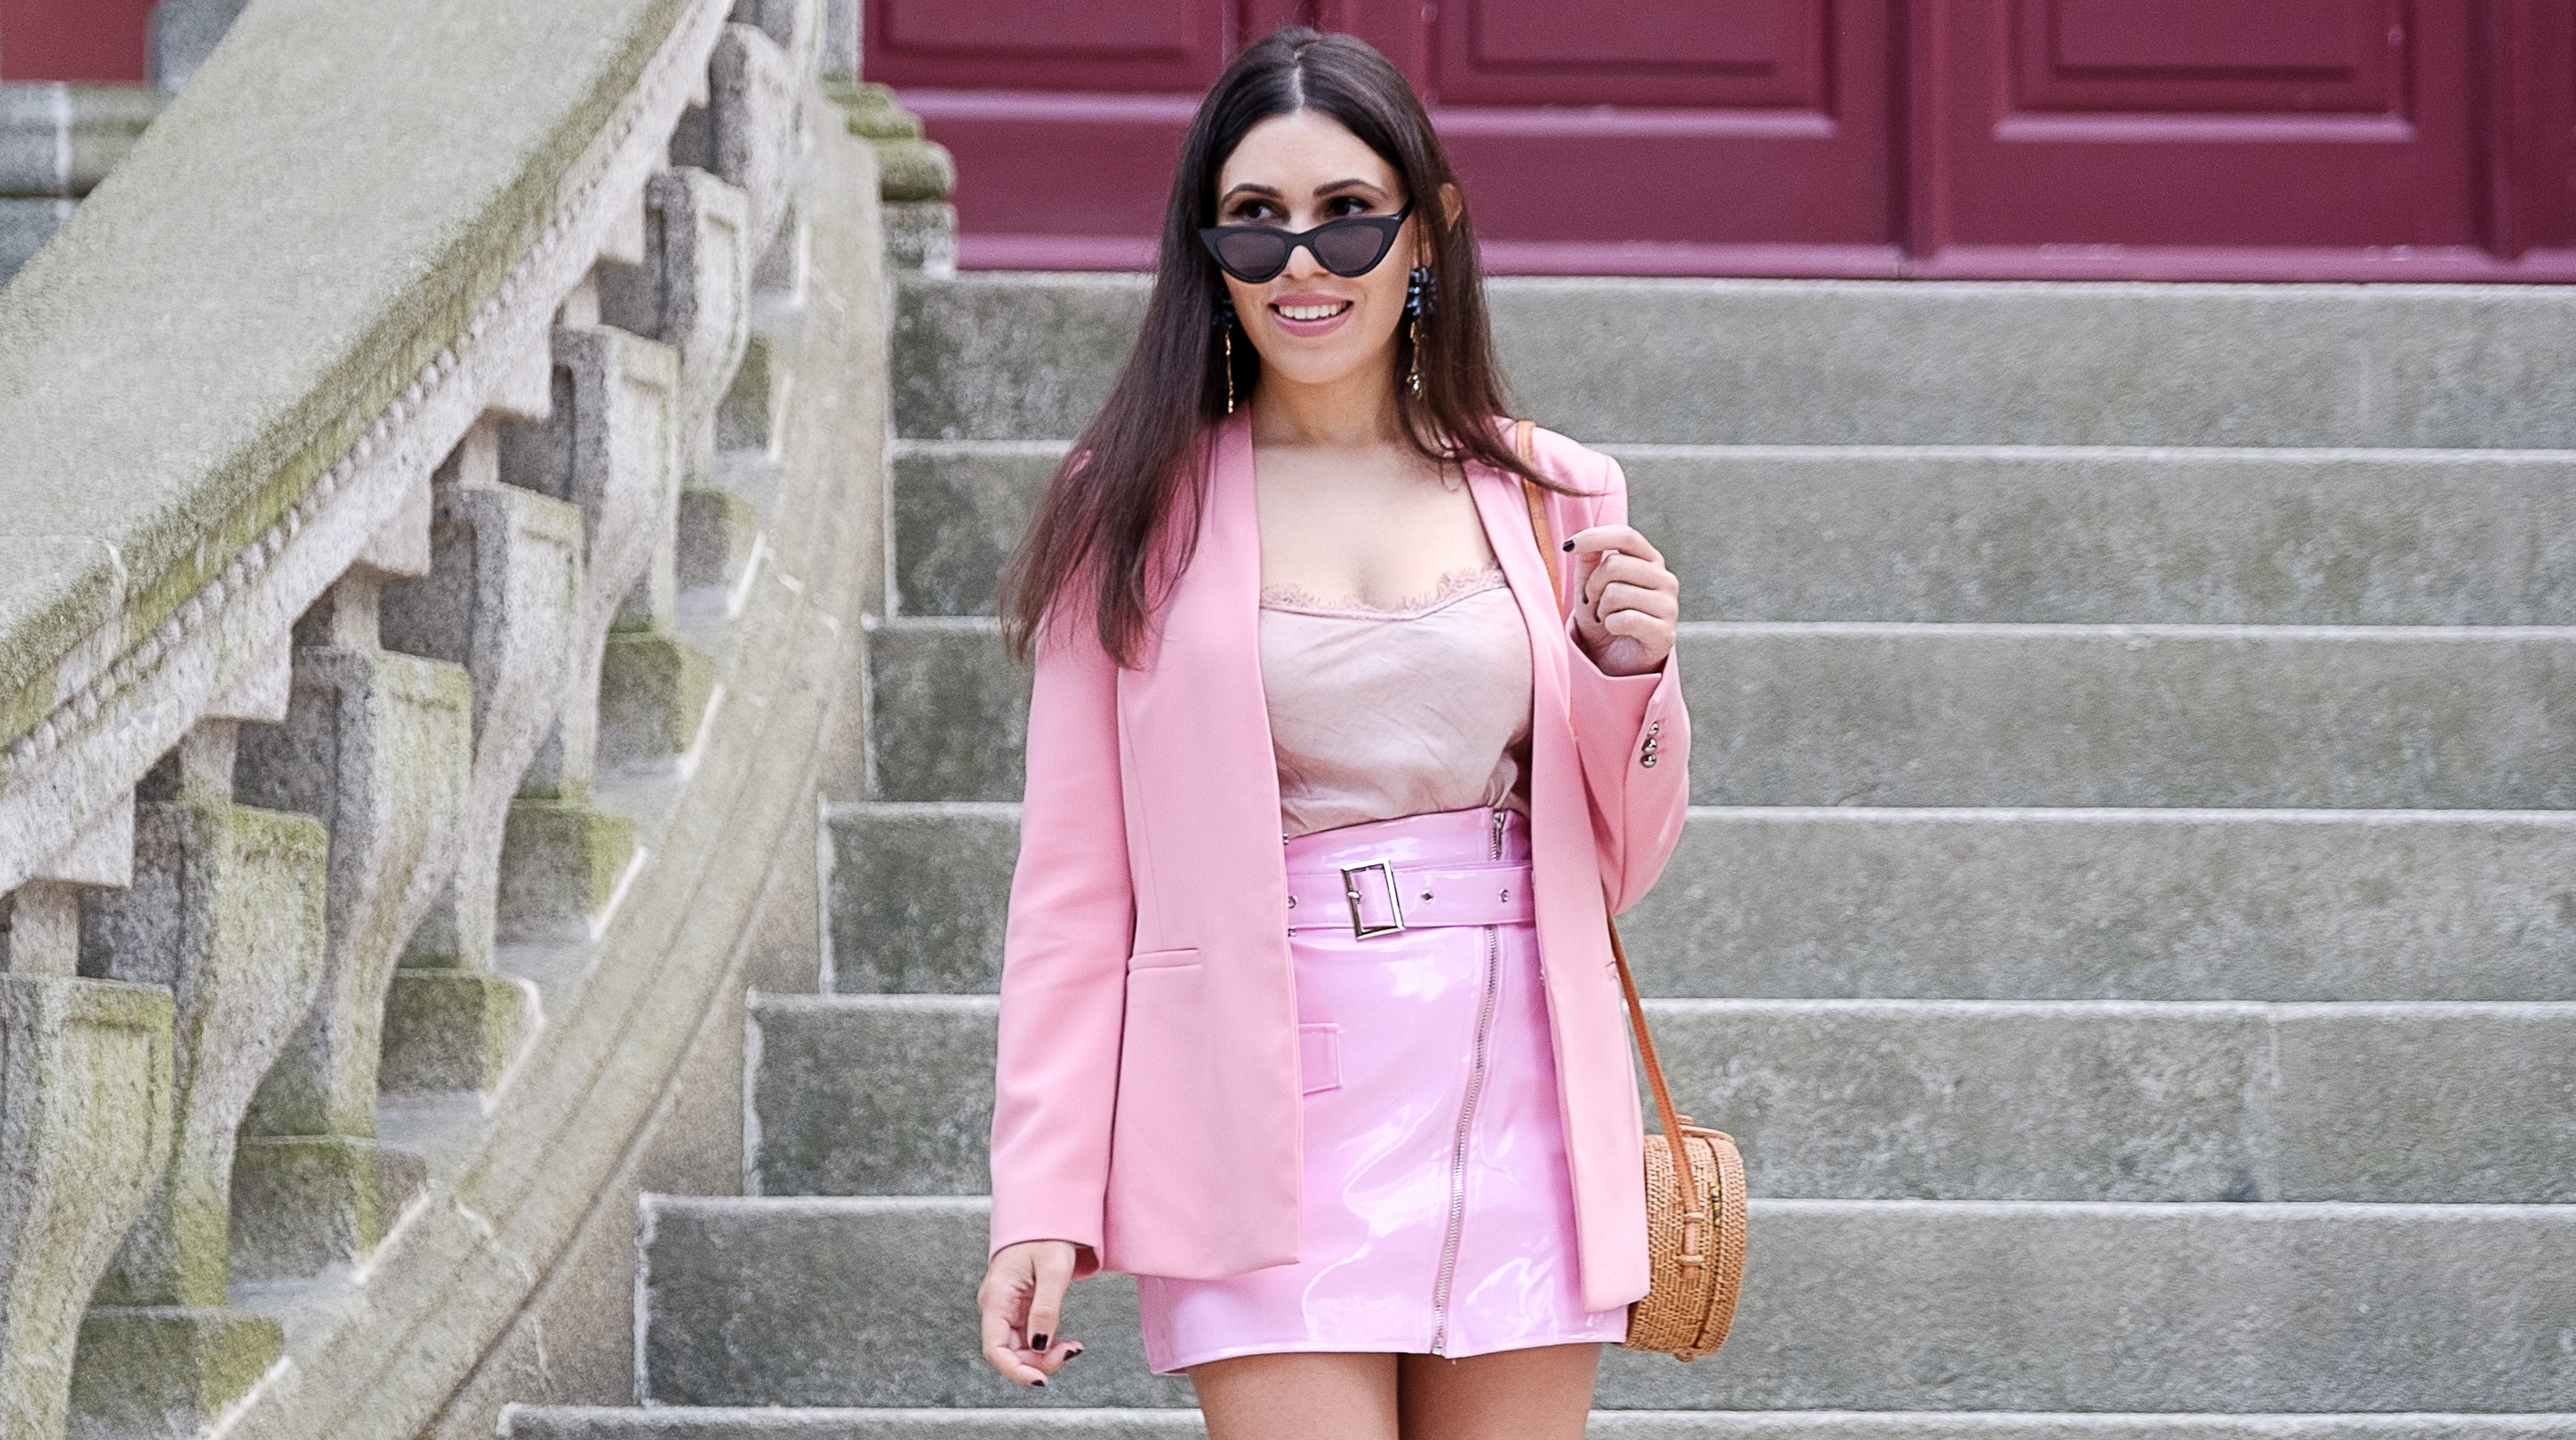 Le Fashionaire How to buy clothes with discount at Boohoo vinil belt pink skirt boohoo satin lace pink top pink zara blazer bold hummingbird blue uterque earrings cat eye mango sunglasses 9350F EN